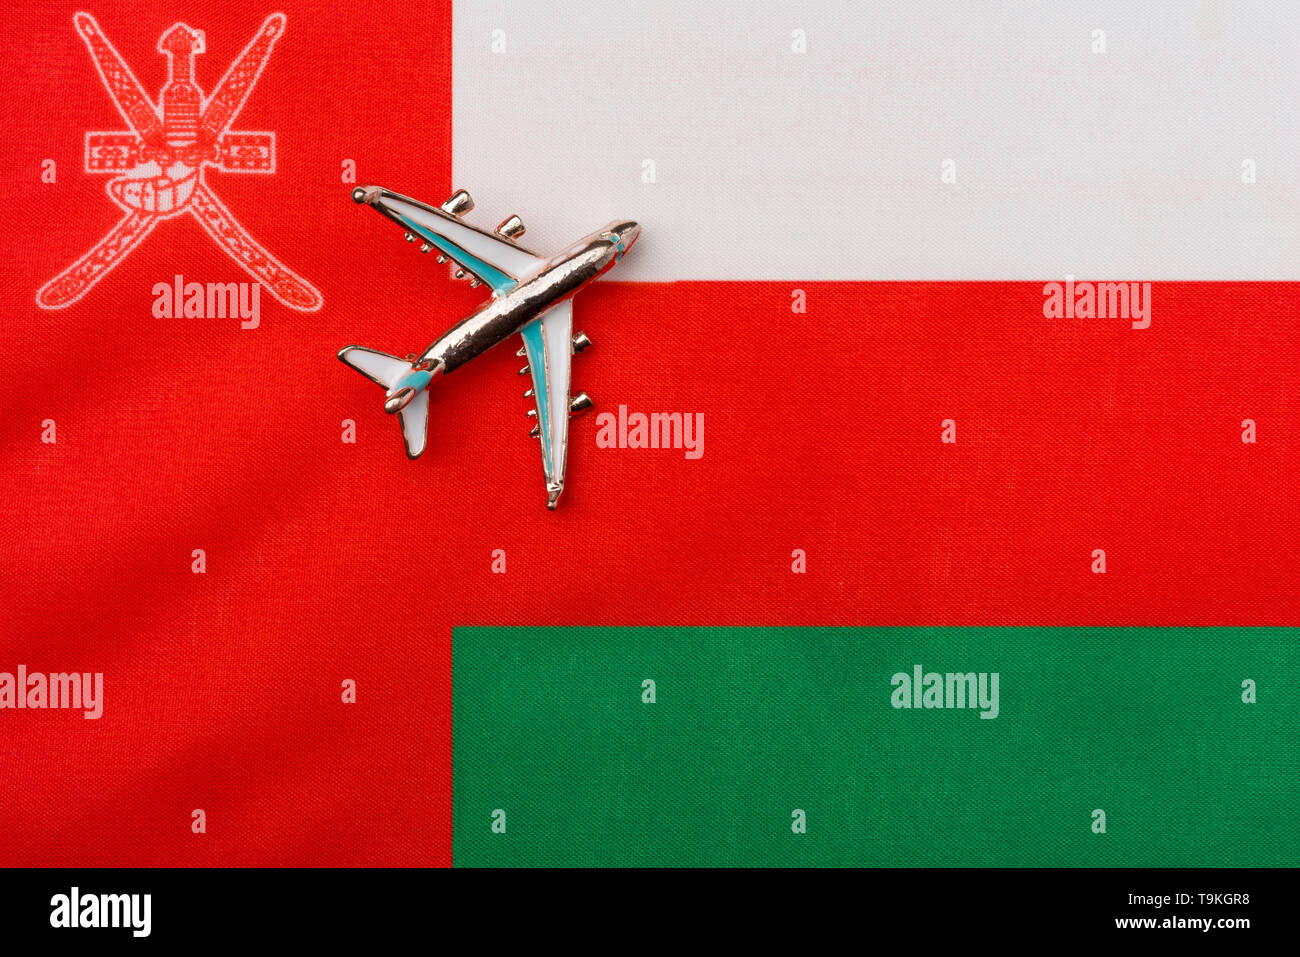 Plane over the flag of Oman travel concept. Toy plane on the flag in the background. - Stock Image